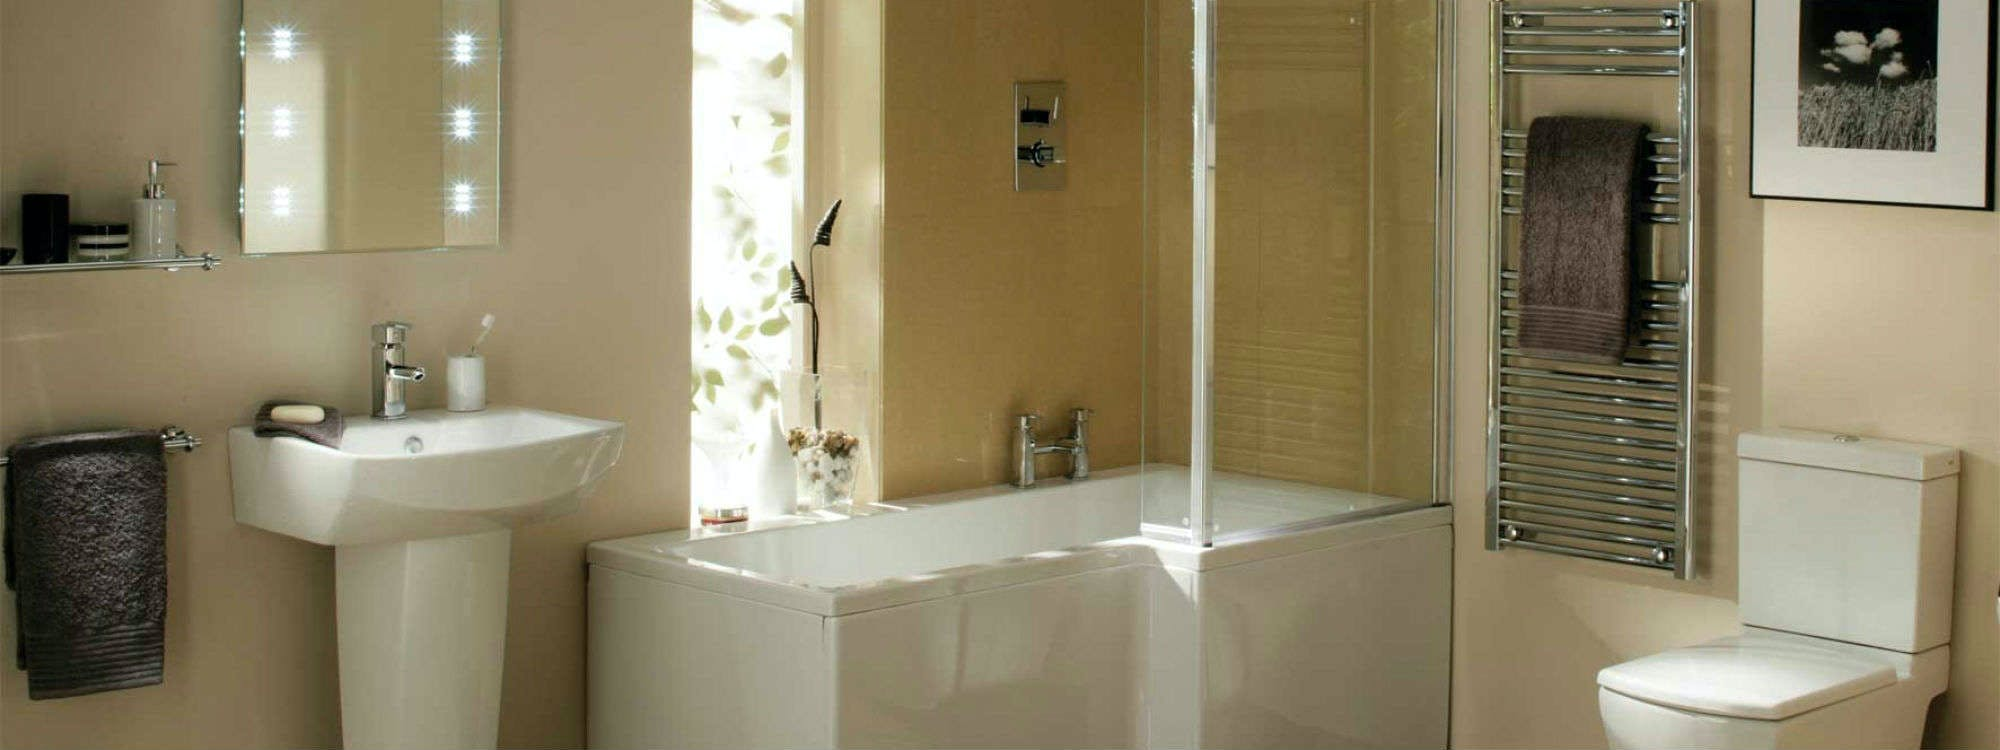 At More Bathrooms we create multi-tasking, family fitted bathrooms that still offer a peaceful retreat to escape to at the end of a long day,